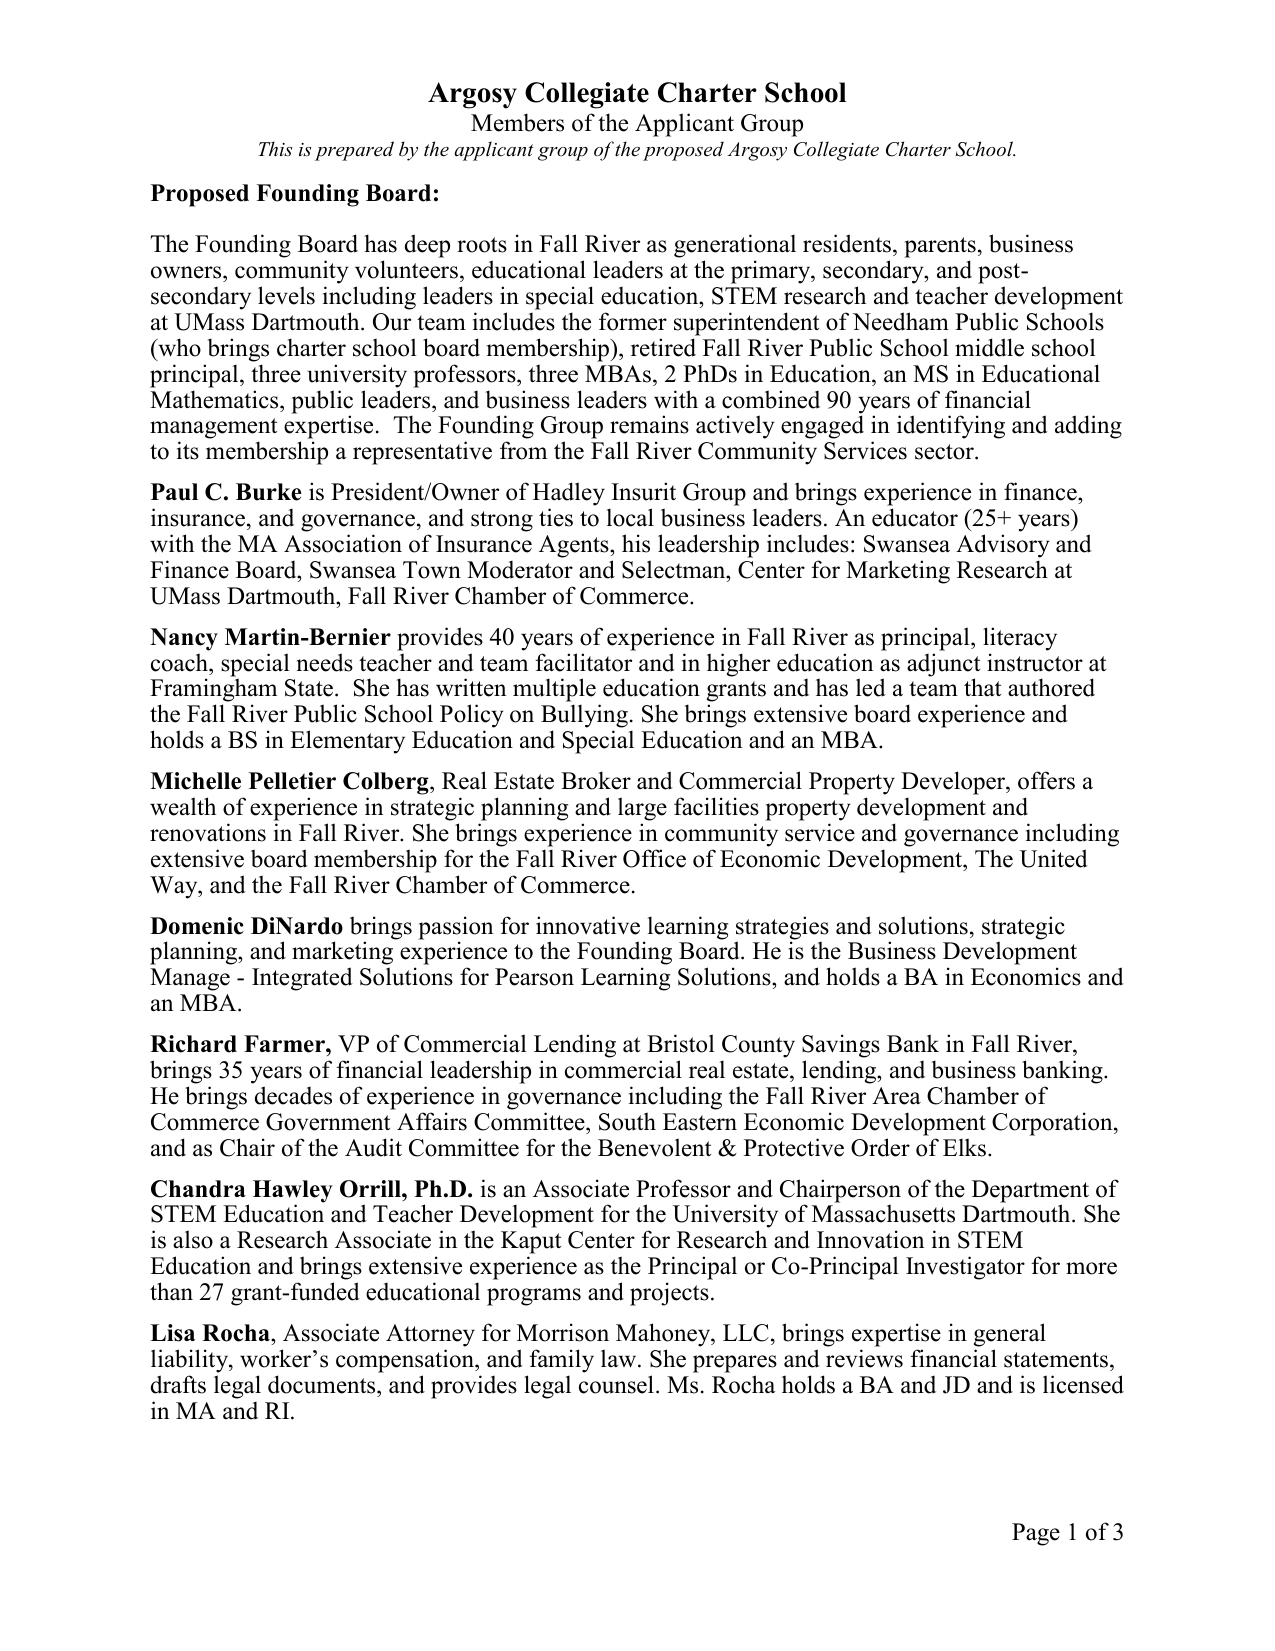 Wonderful Committee Charter Template Contemporary - Entry Level ...